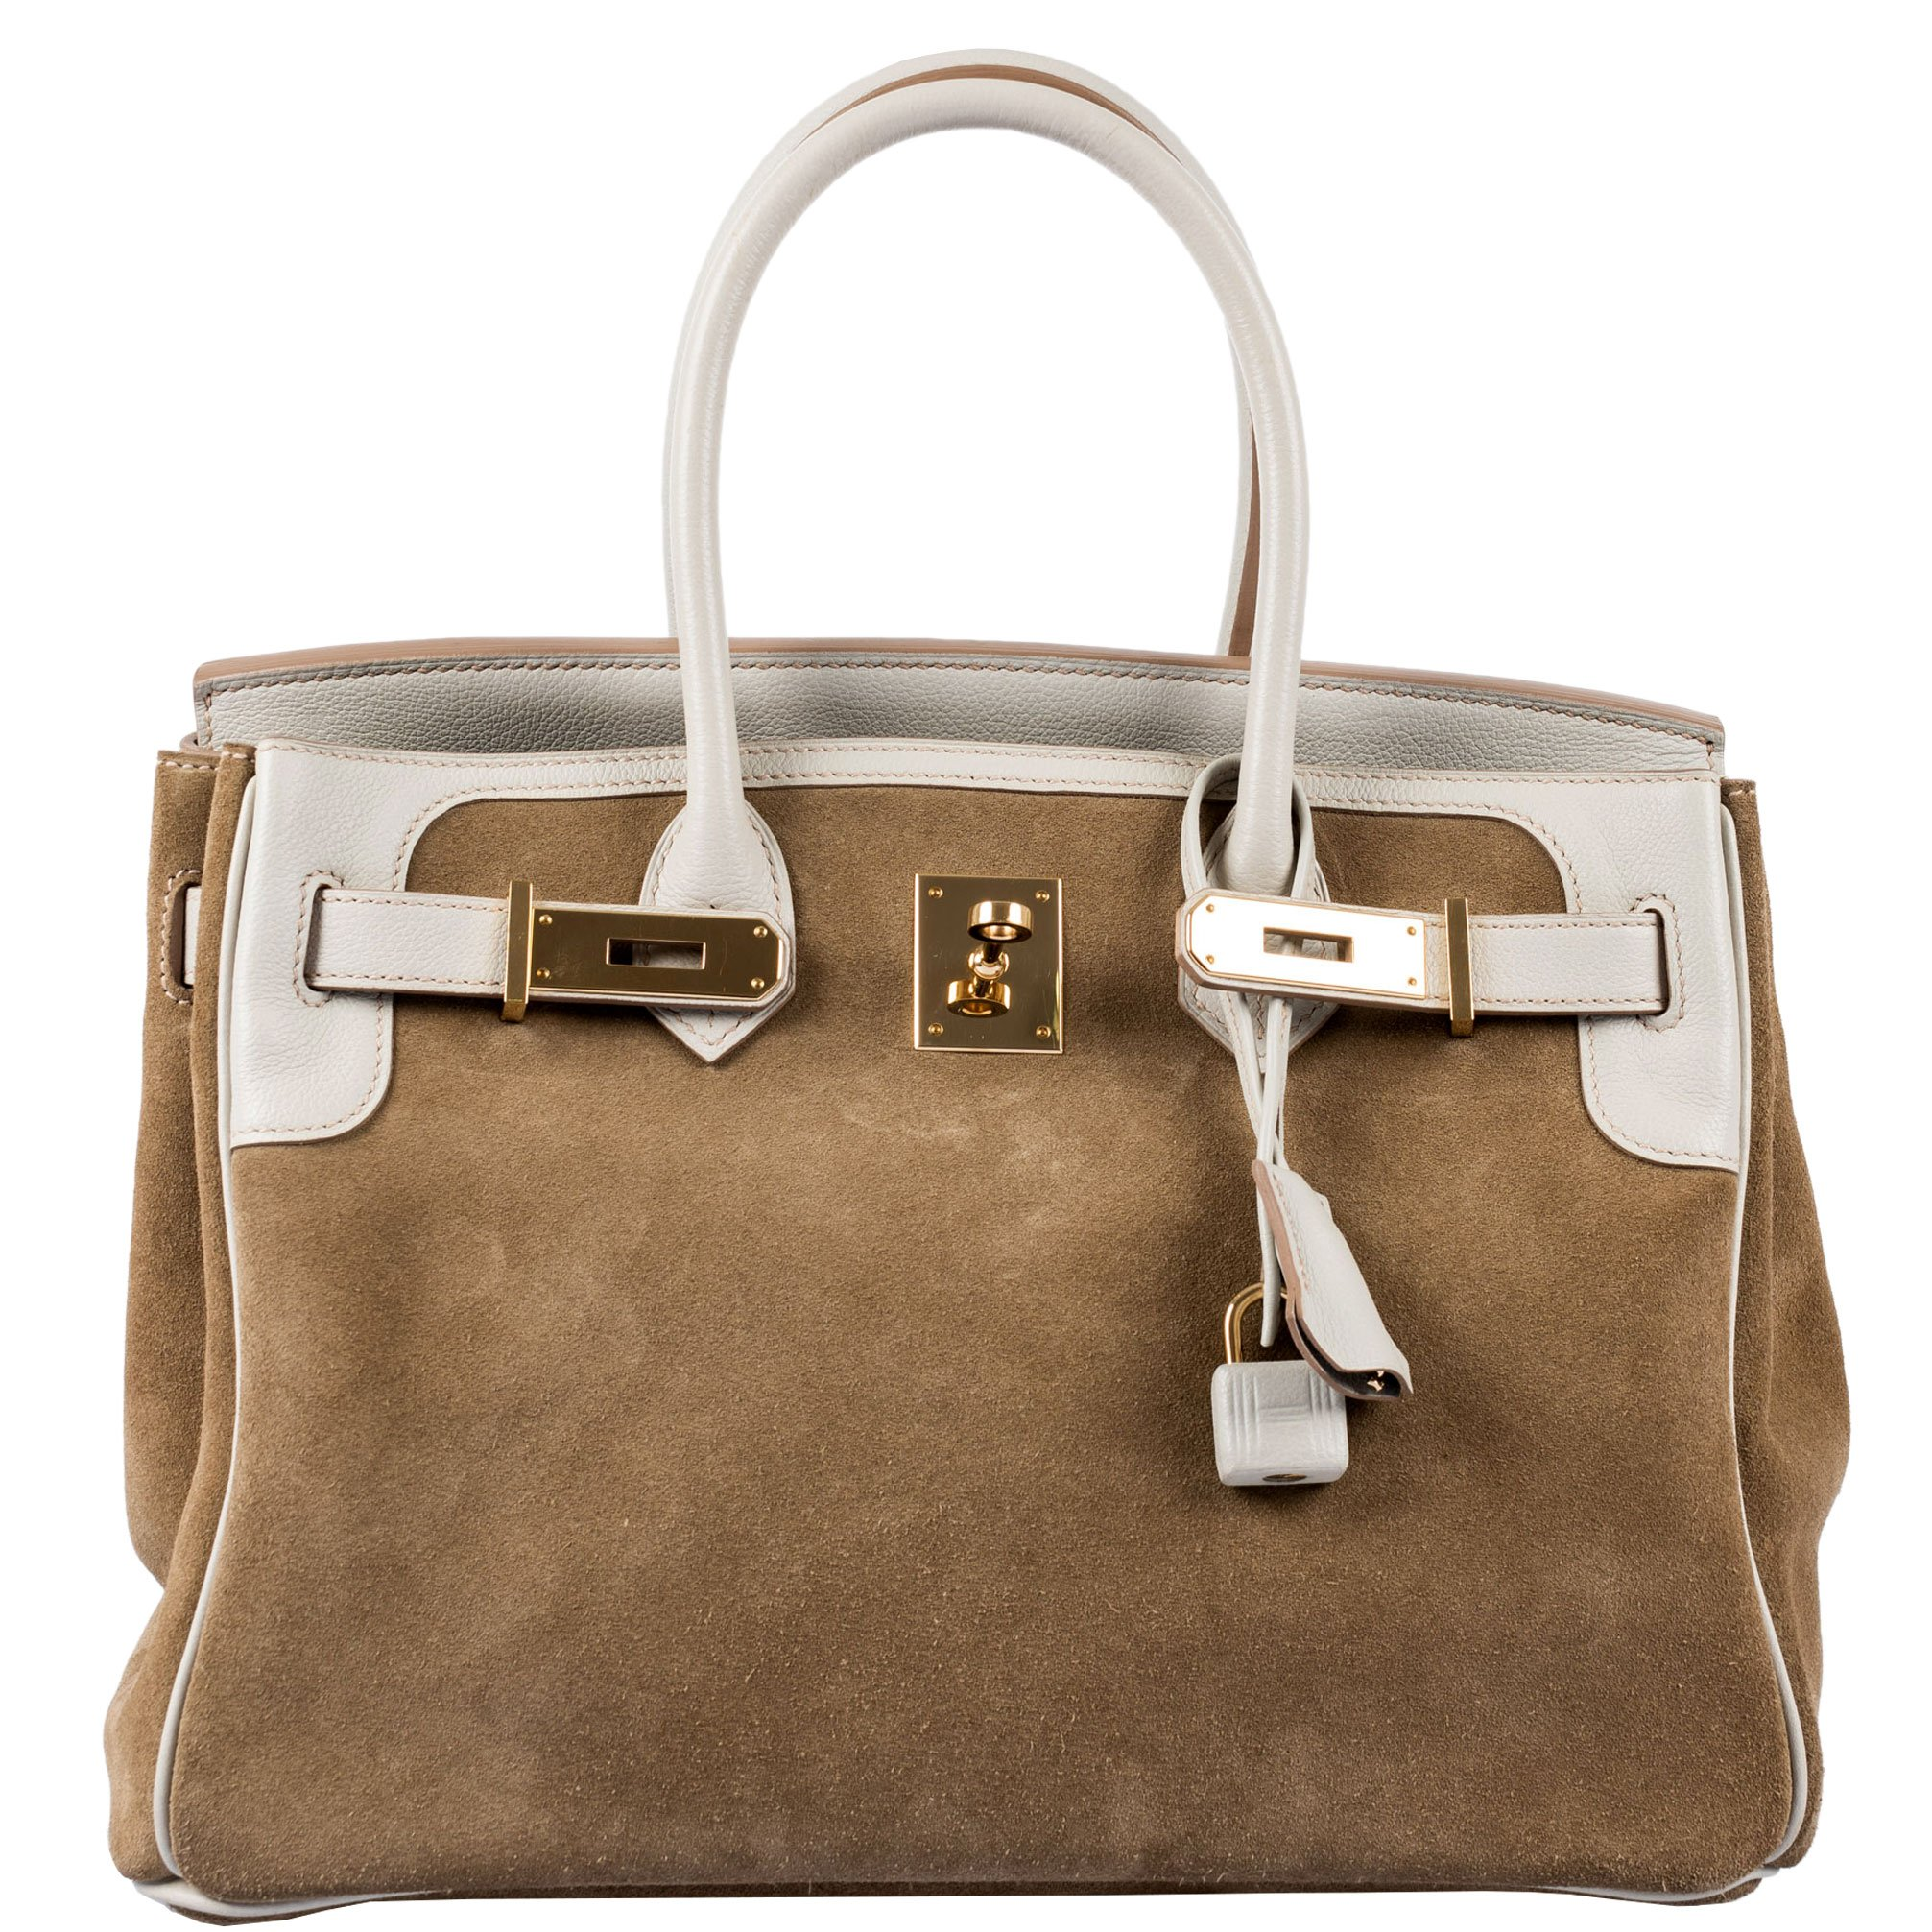 Hermes Birkin 30 Grizzly Gris Perle Swift & Suede Permabrass